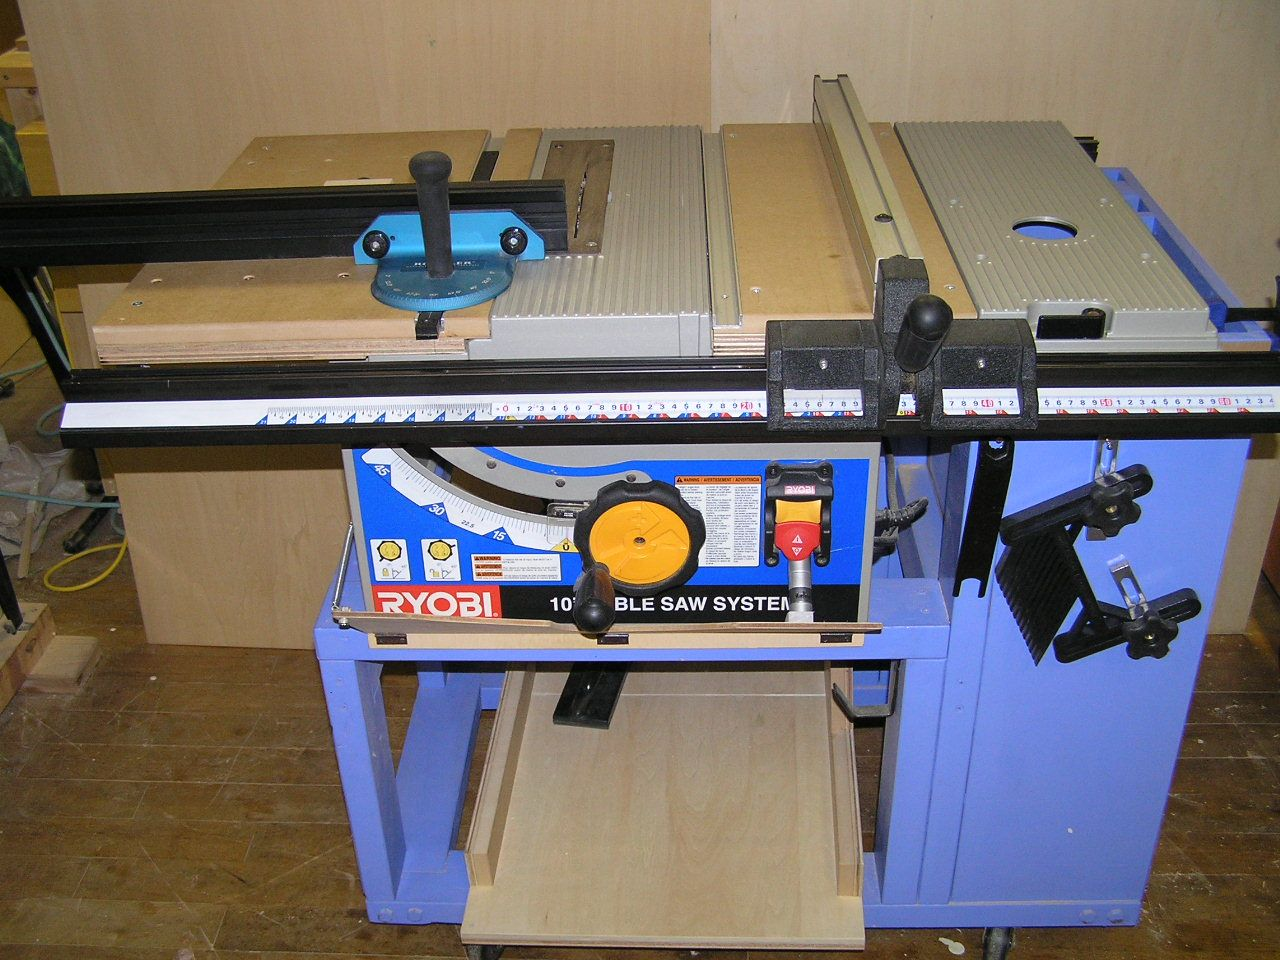 Table Saw Miter Gauges Are Too Short To Provide Enough Support Safely Make Many Cuts Chris Marshall Lays Out The Reasons Why Adding A Simple Longer Fenc